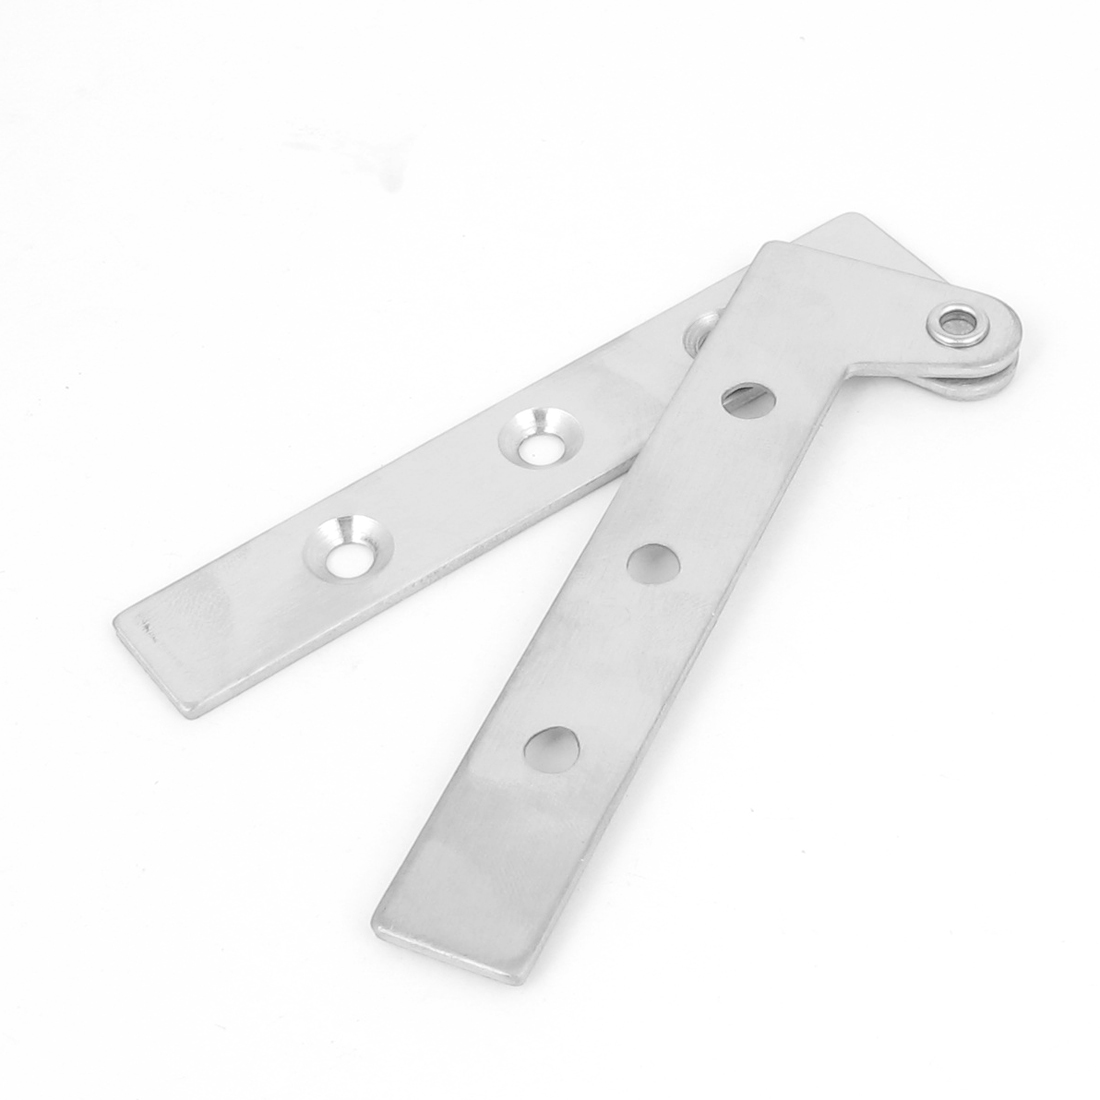 100mm Long Silver Tone Metal 360 Degree Rotatable Screws Fixed Door Pivot Hinge